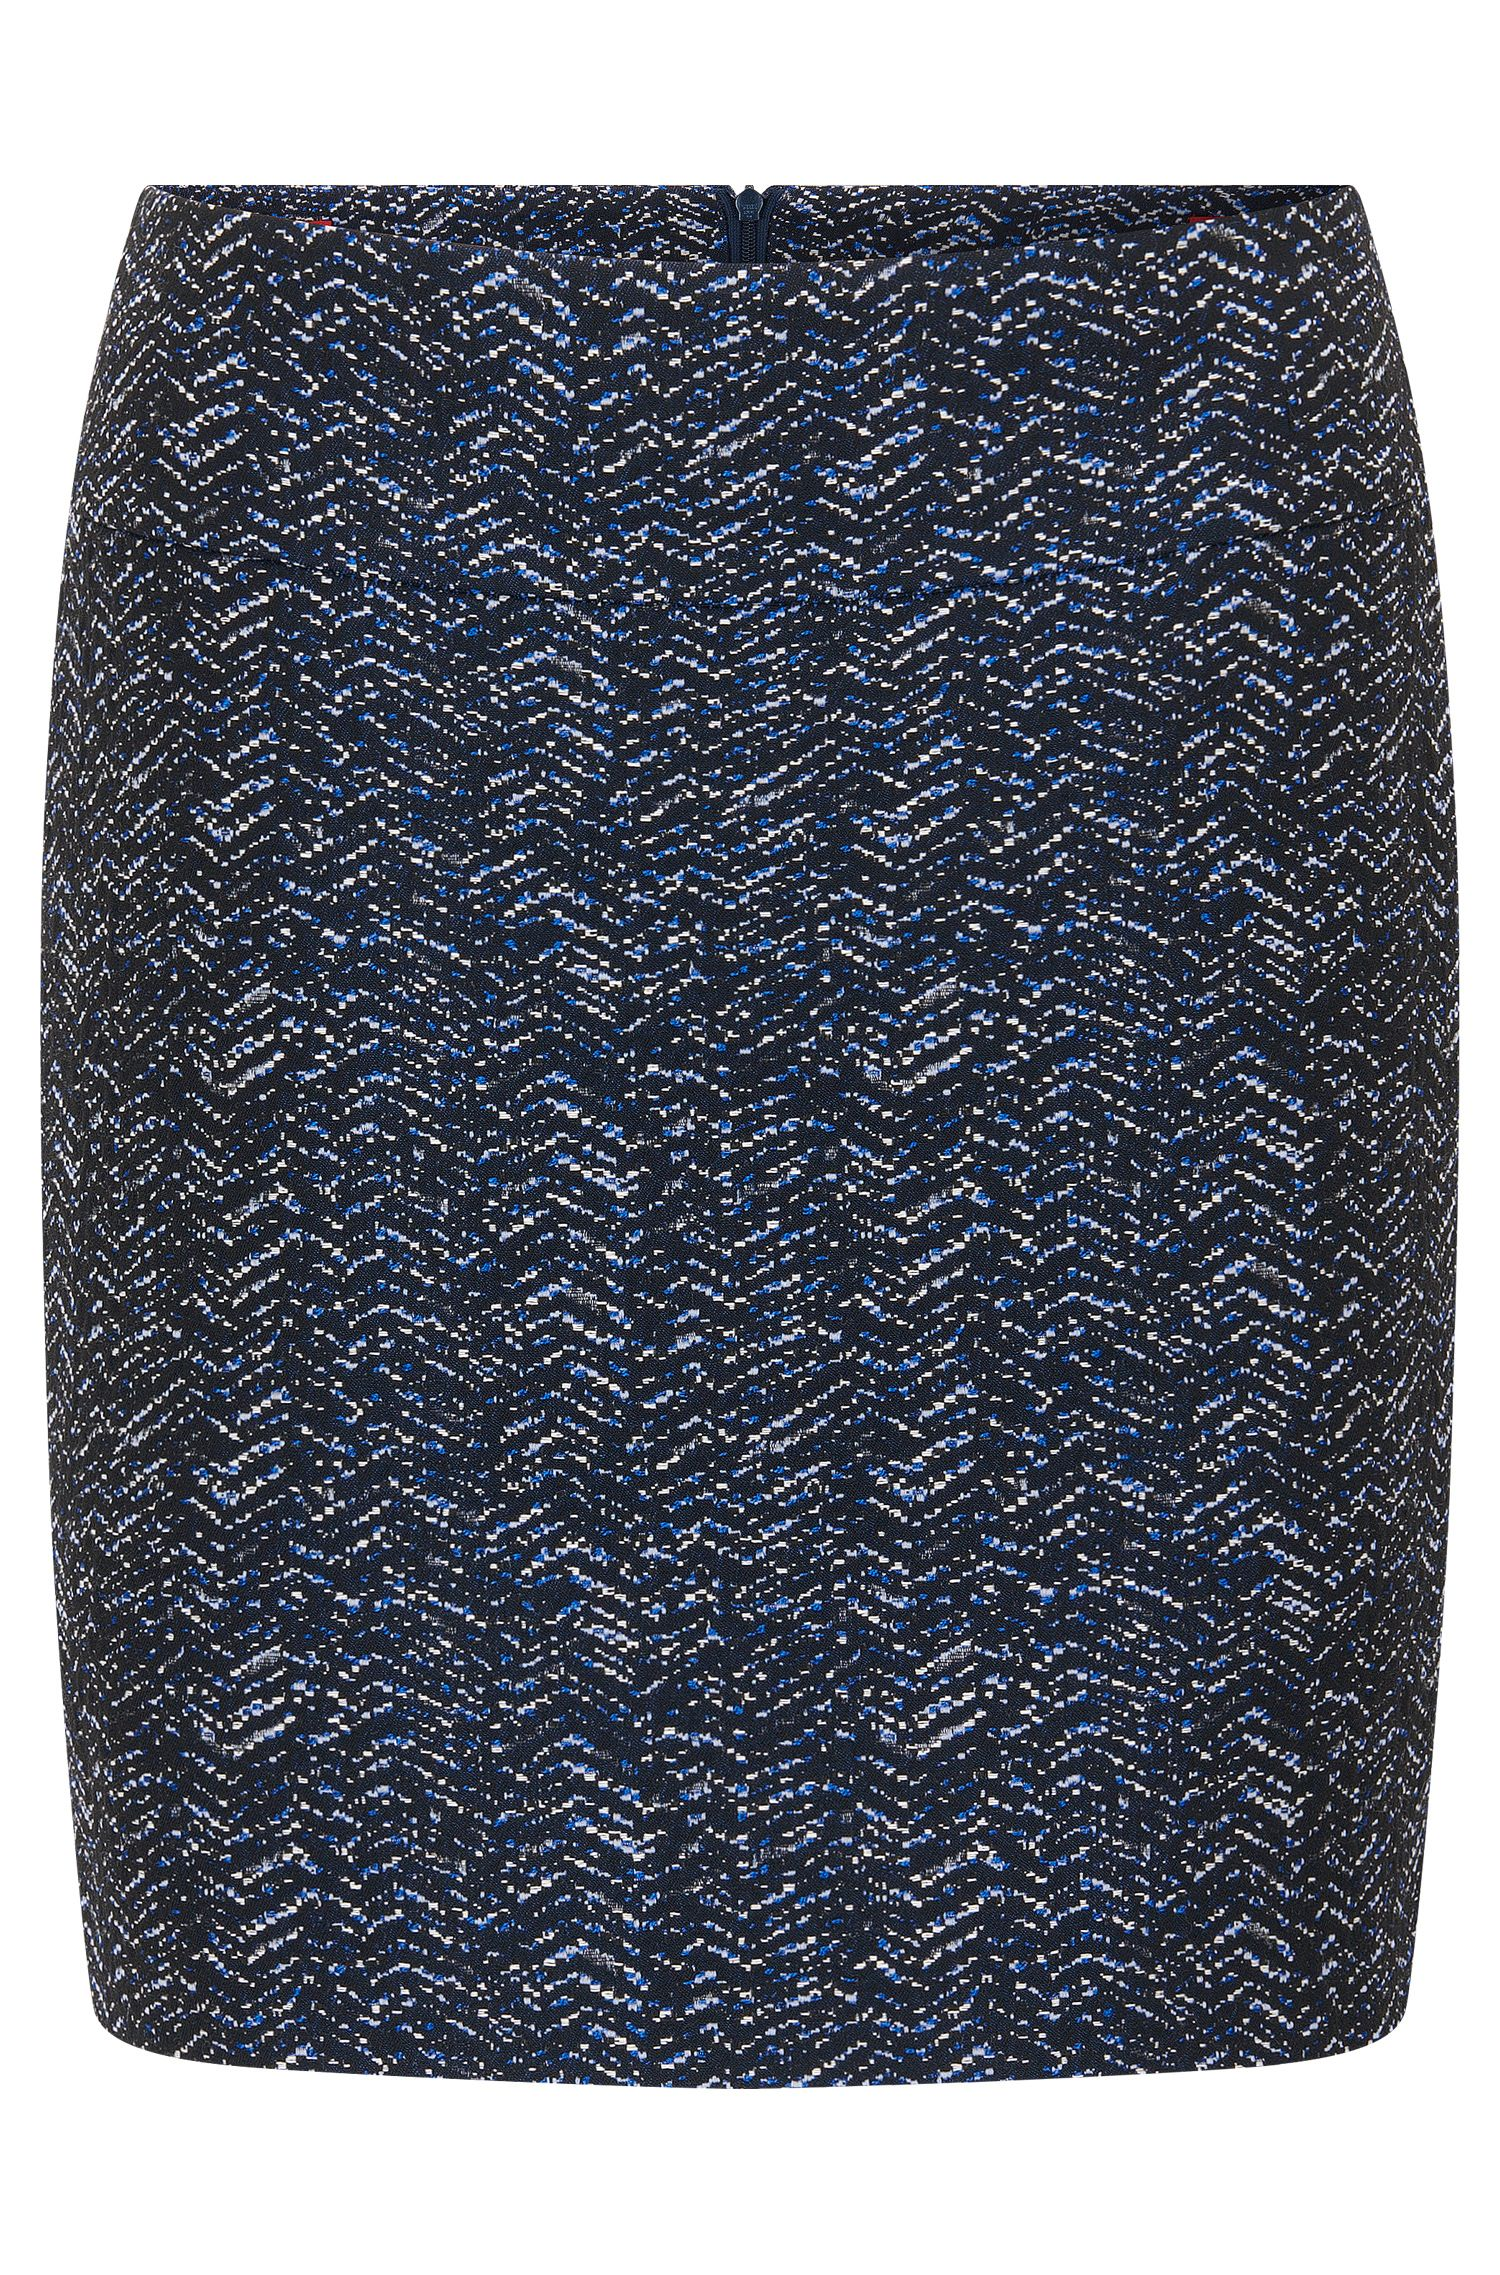 Mini skirt in yarn-dyed jacquard